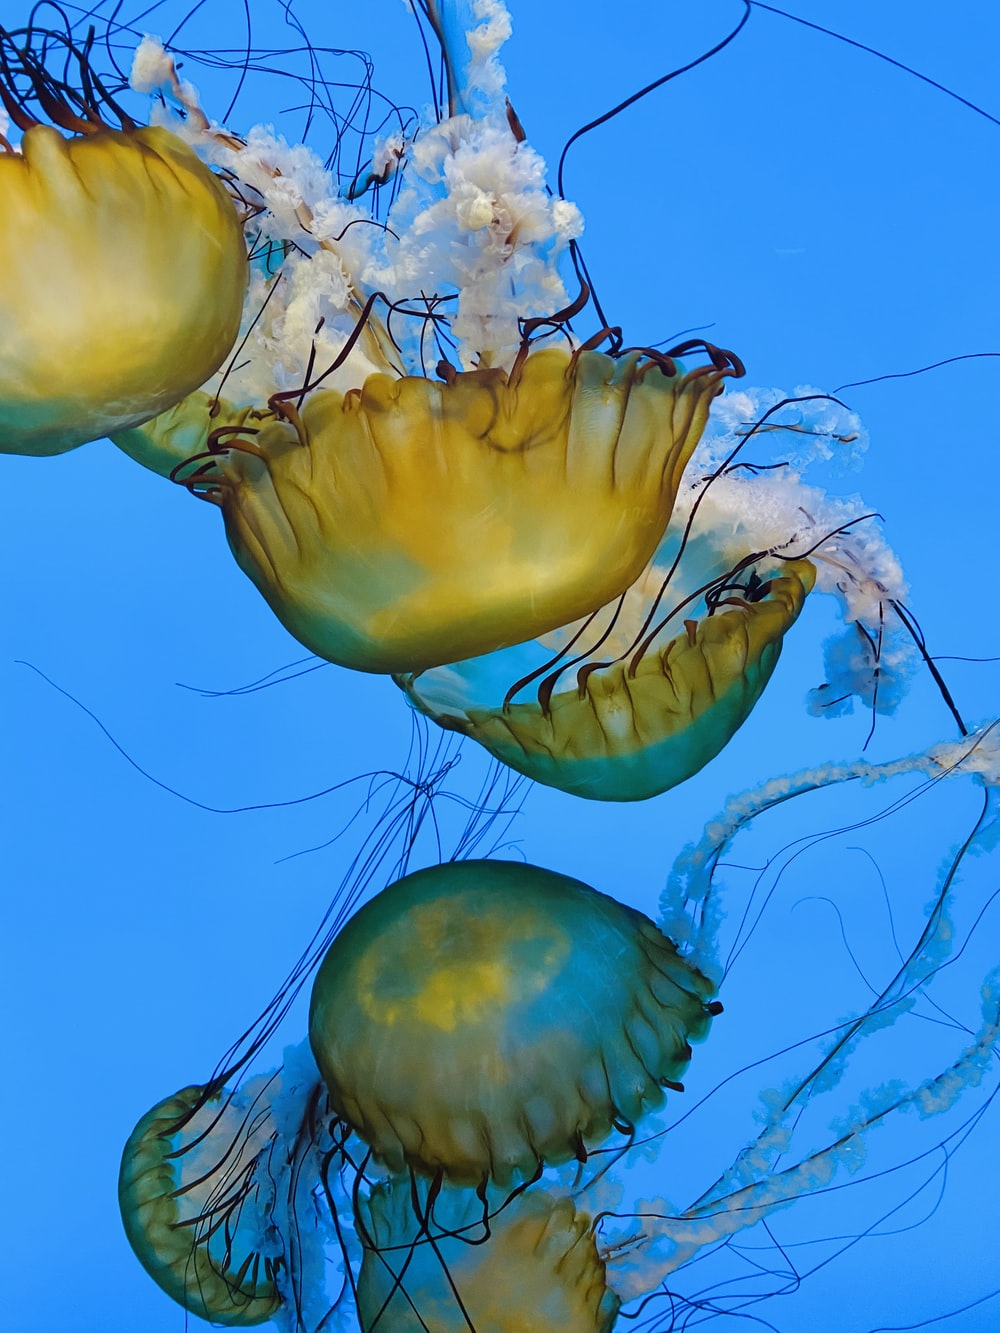 yellow jellyfish in blue water